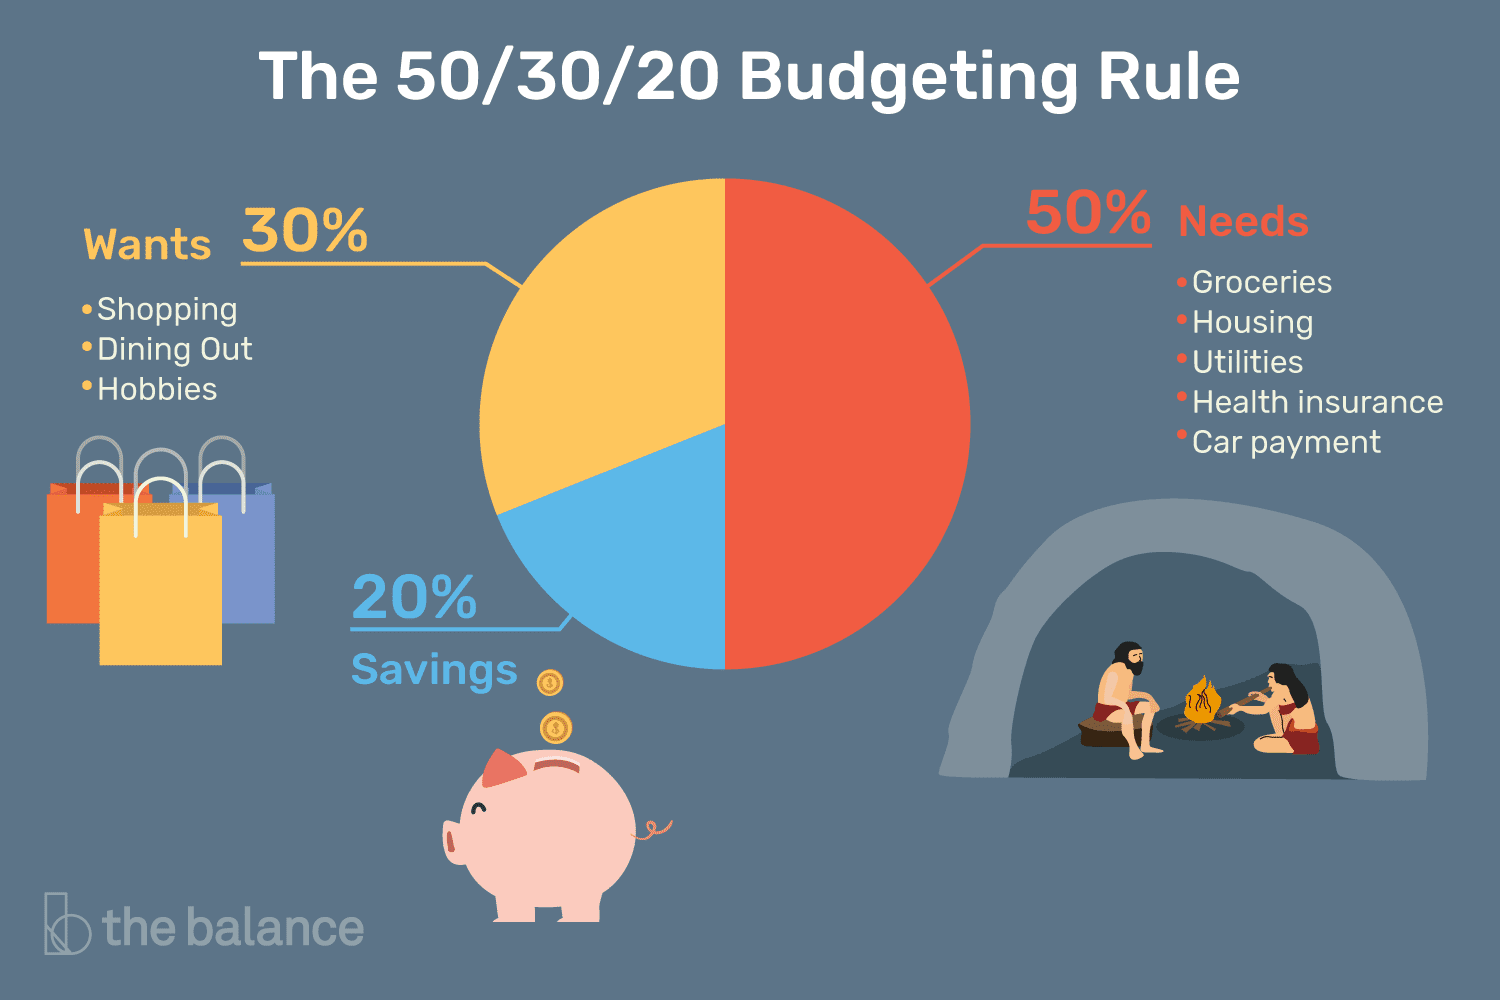 The 50/30/20 Budgeting Rule—How It Works